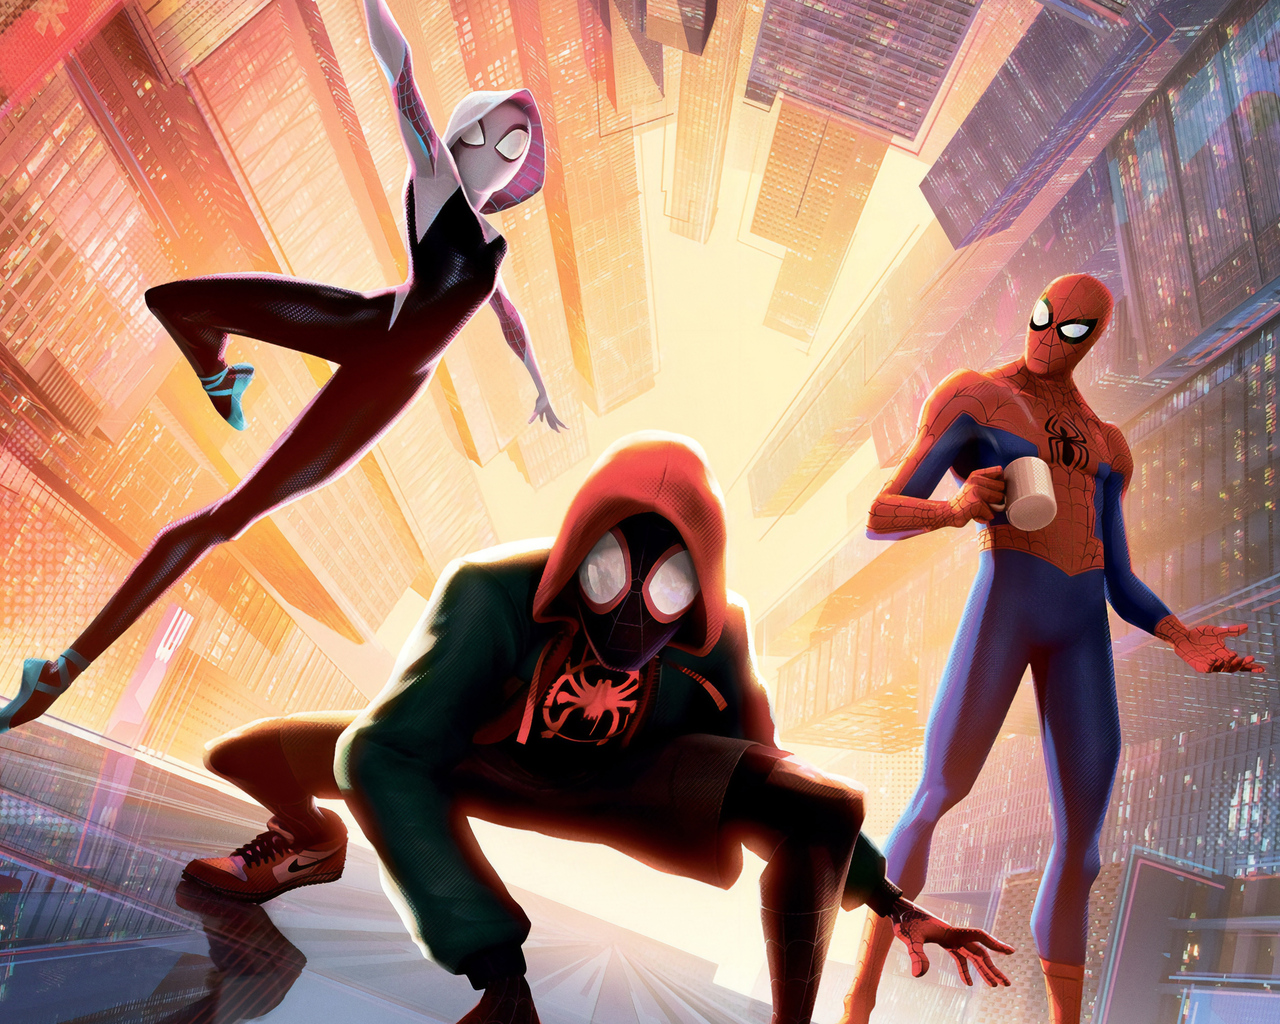 spiderman-into-the-spider-verse-new-new-5k-31.jpg